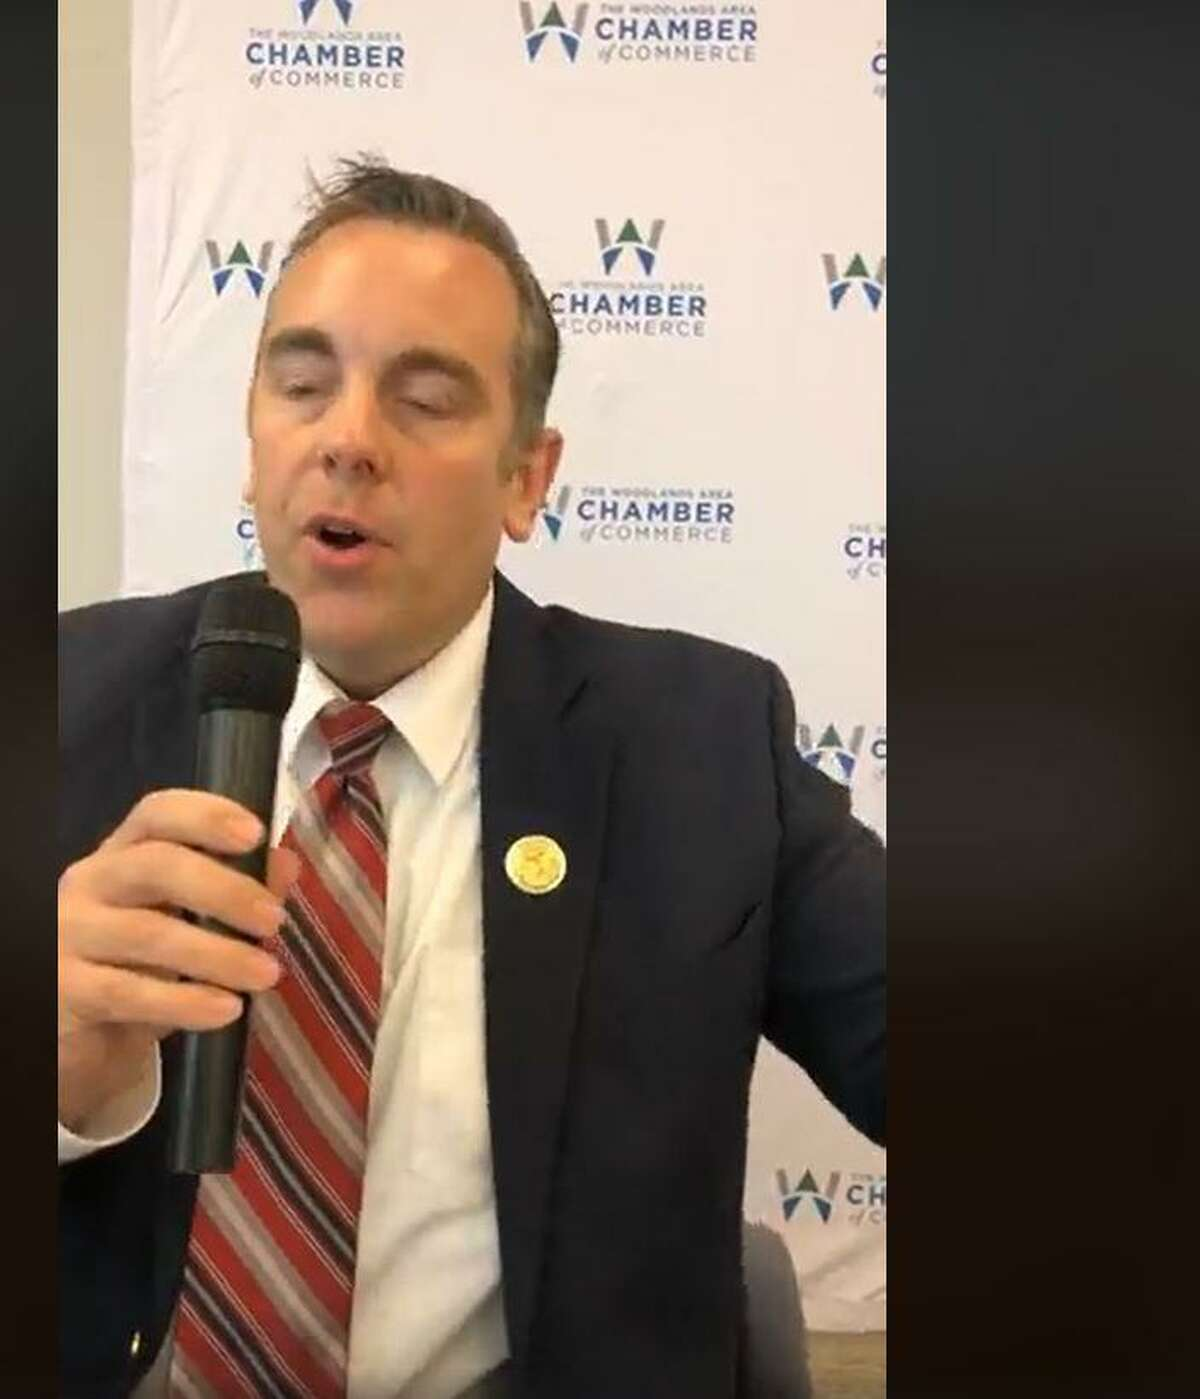 Candidates for the township Board of Directors participated in an online forum on Tuesday, Sept. 29, at The Woodlands Area Chamber of Commerce. Thomas Chumbley is seeking the Positioon 2 seat against three other challengers.